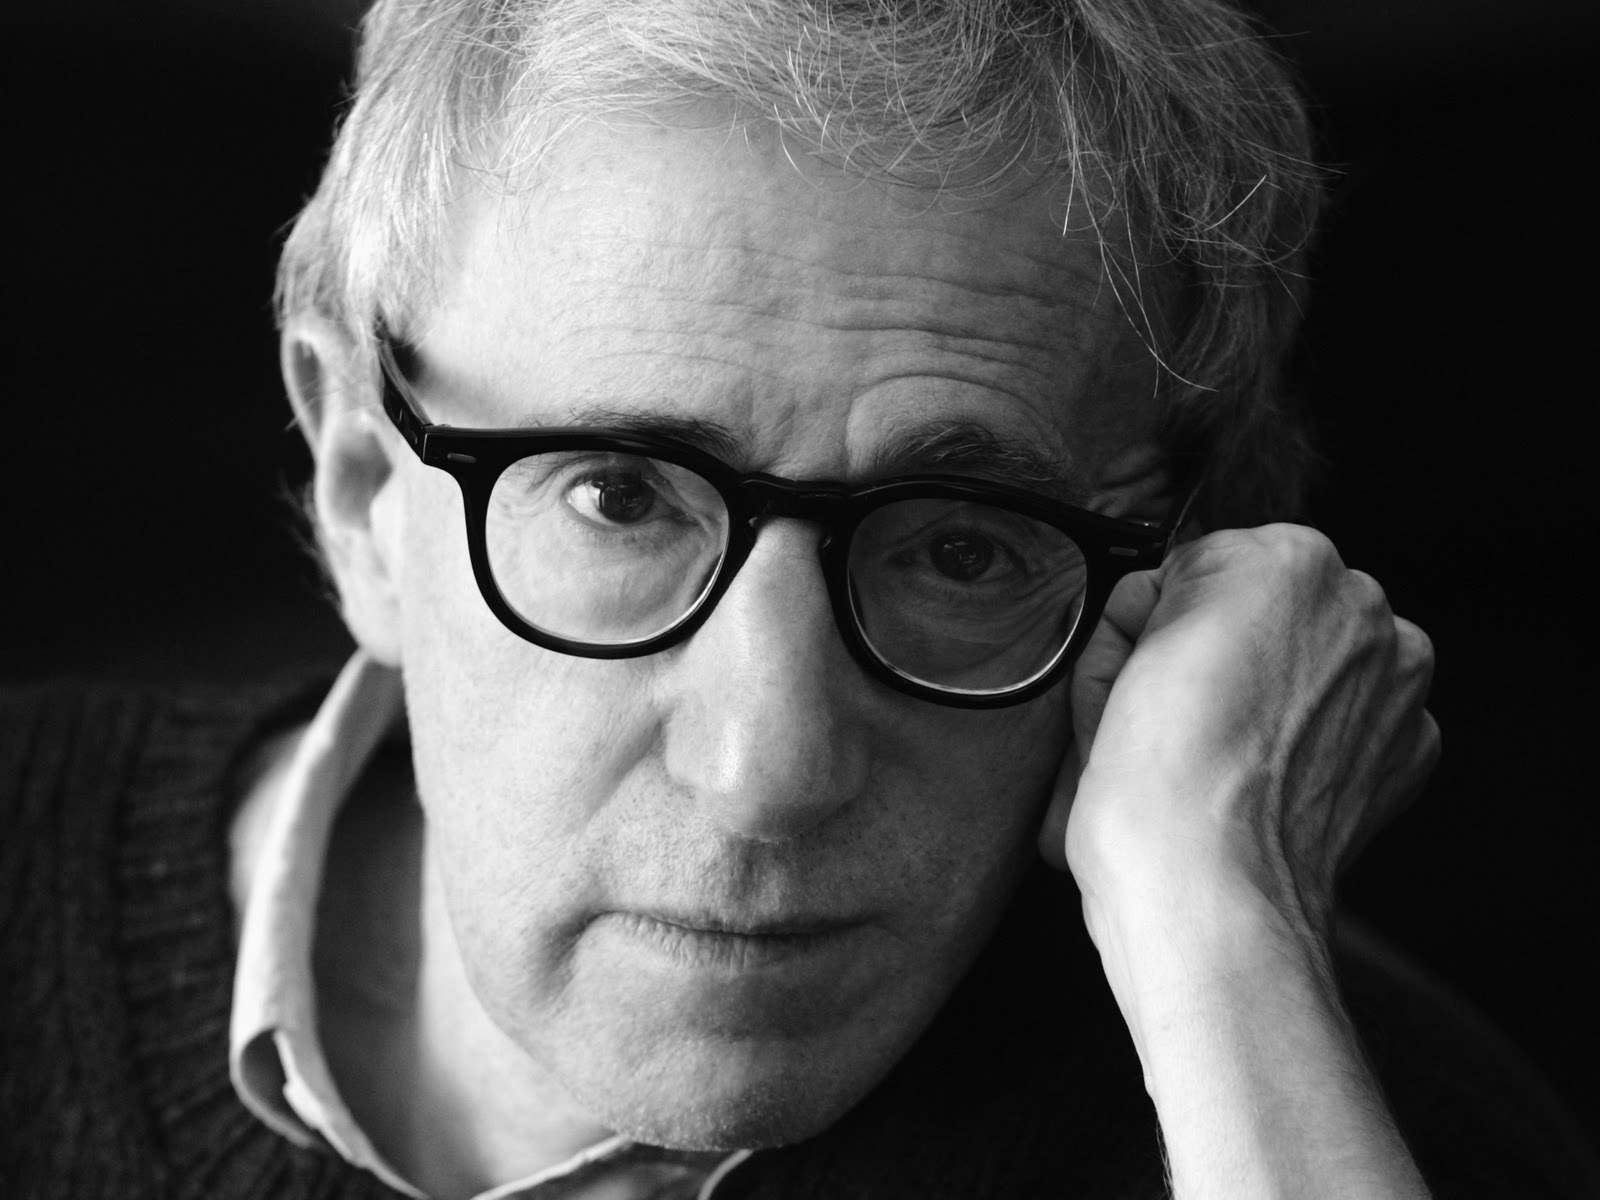 WOODY ALLEN TRILOGY PLANNED